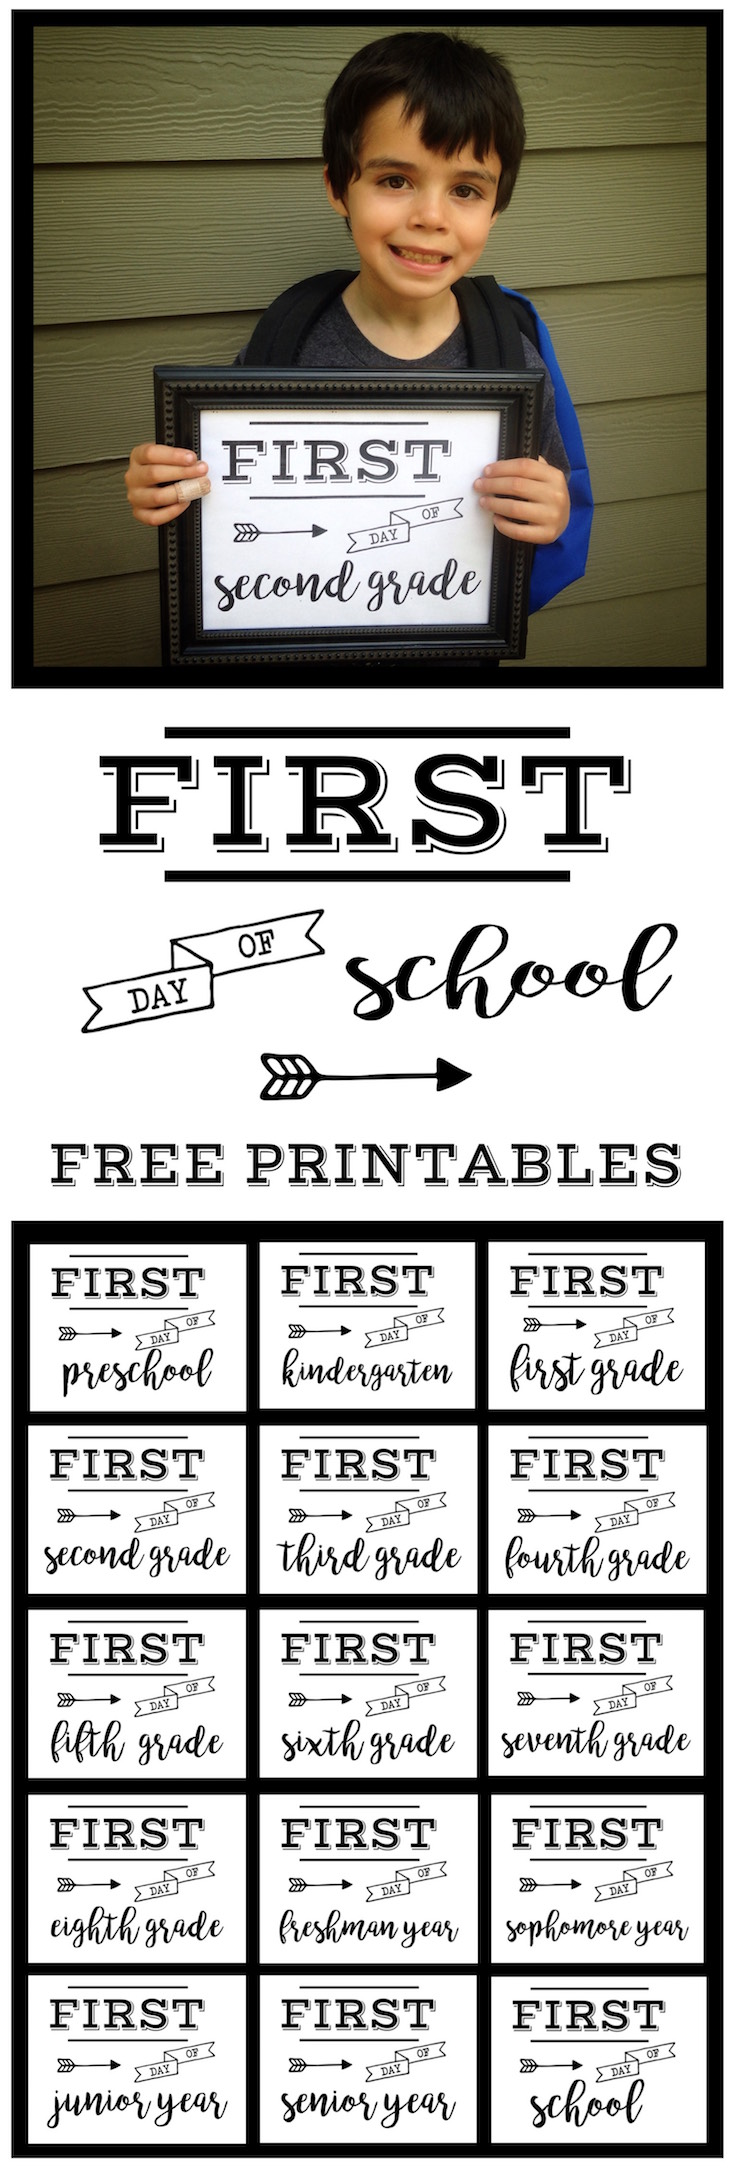 medium resolution of First Day of School Sign Free Printable   Paper Trail Design